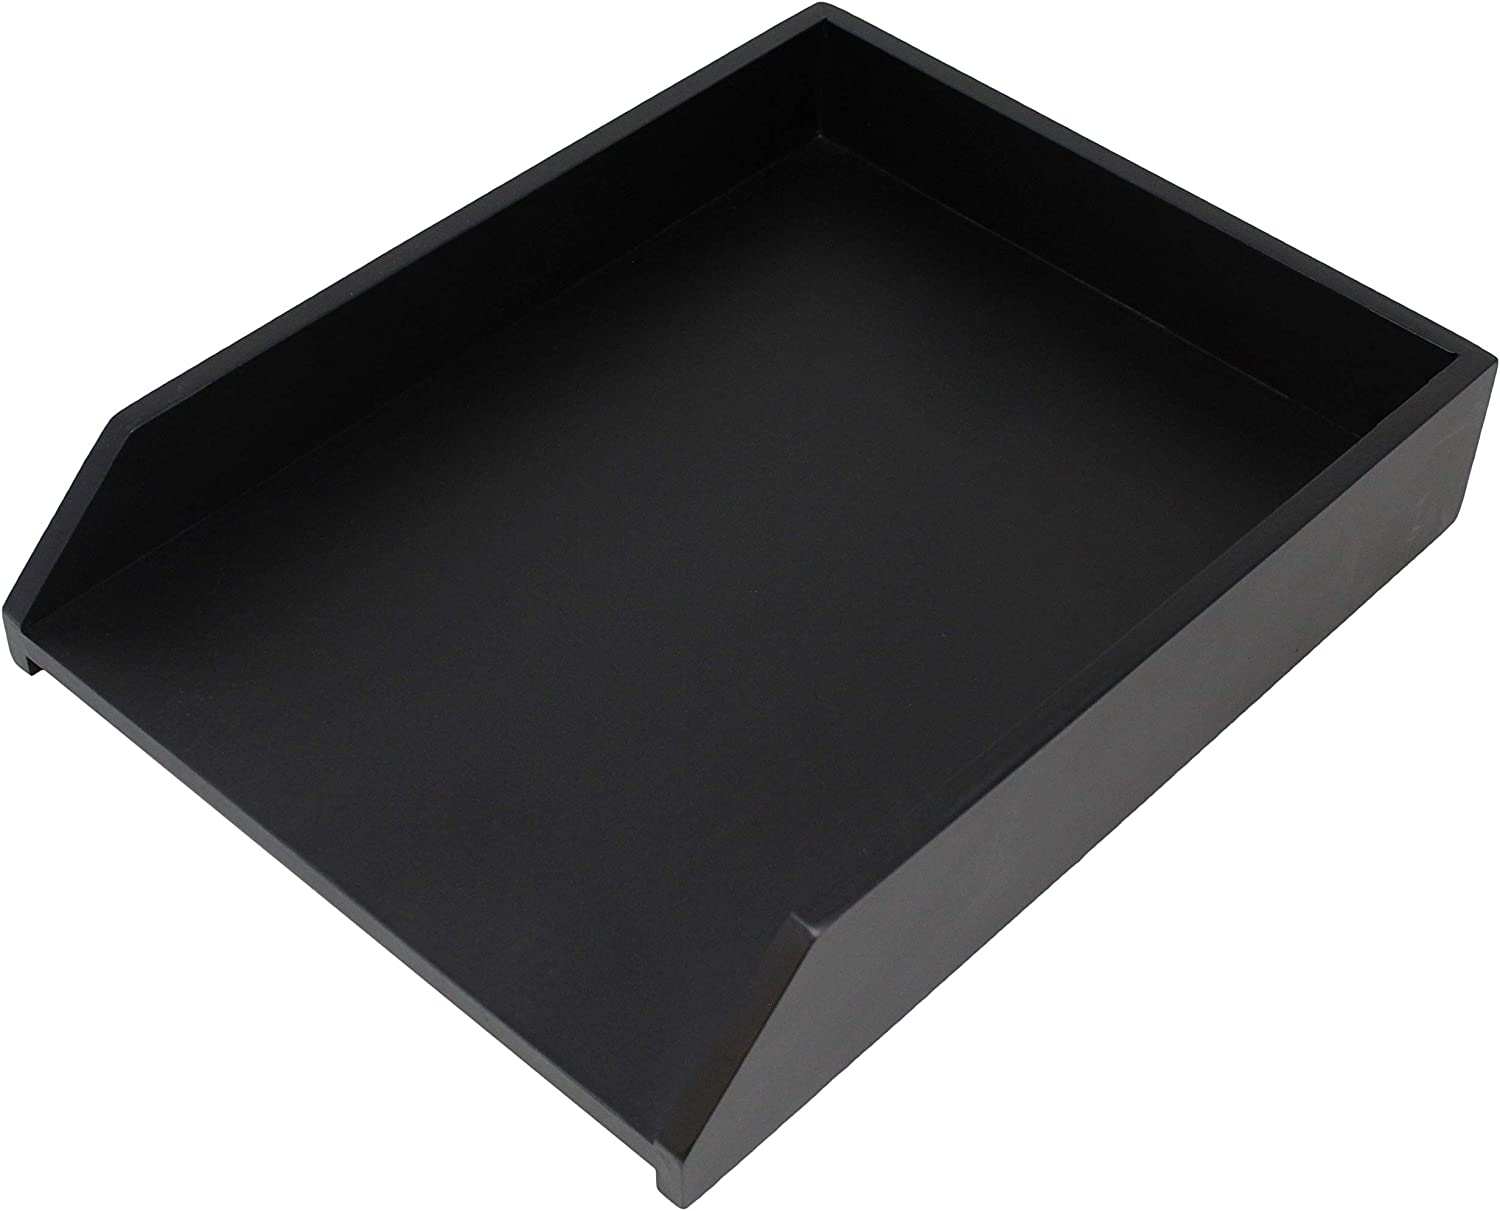 HumanCentric Wood Letter Tray (Solid Black) | Desk Paper Tray for Files and Documents | Inbox Tray for Office